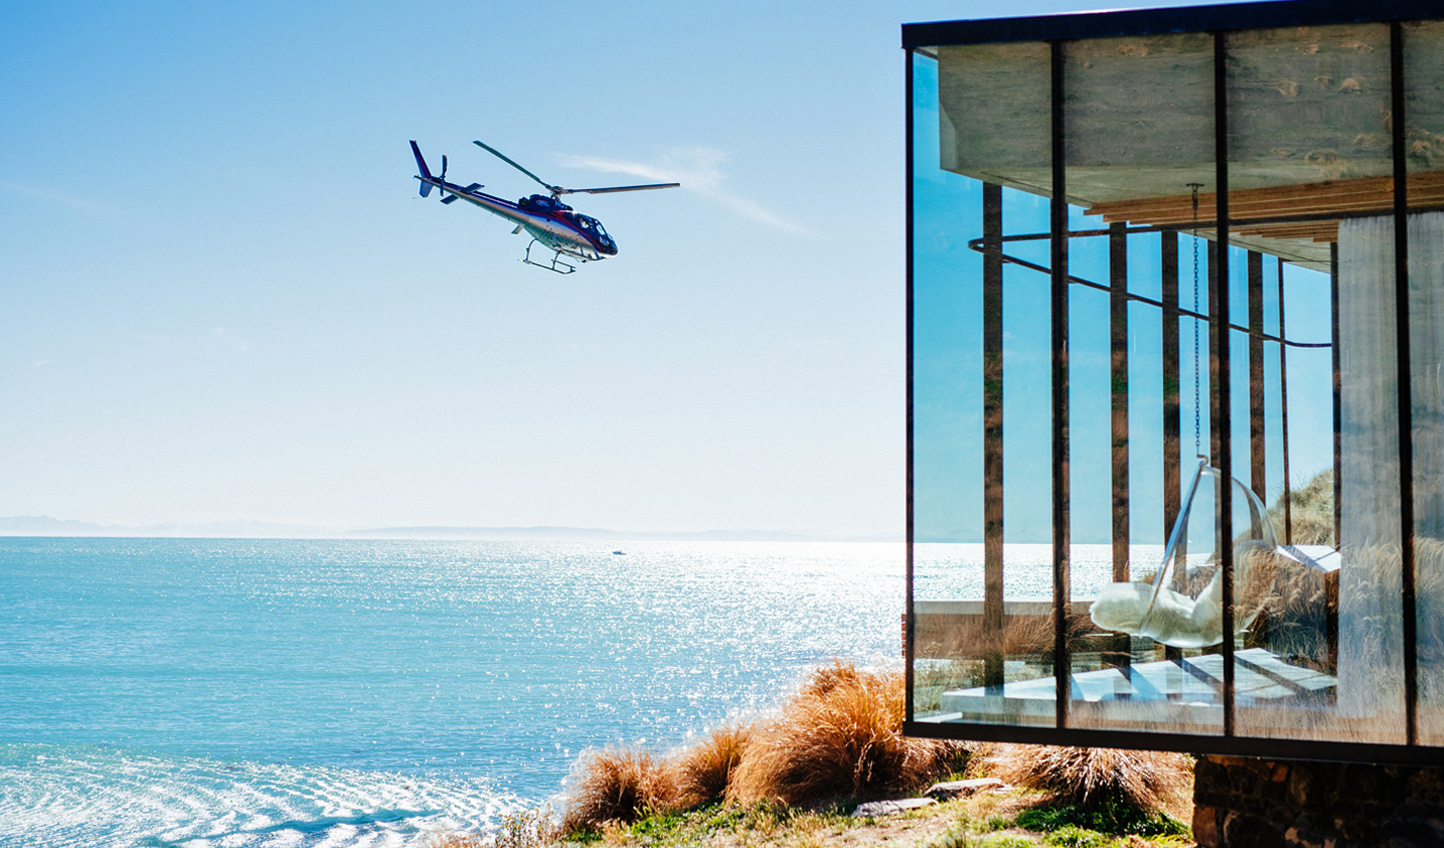 Helicopter arrival to the ultra-modern Seascape